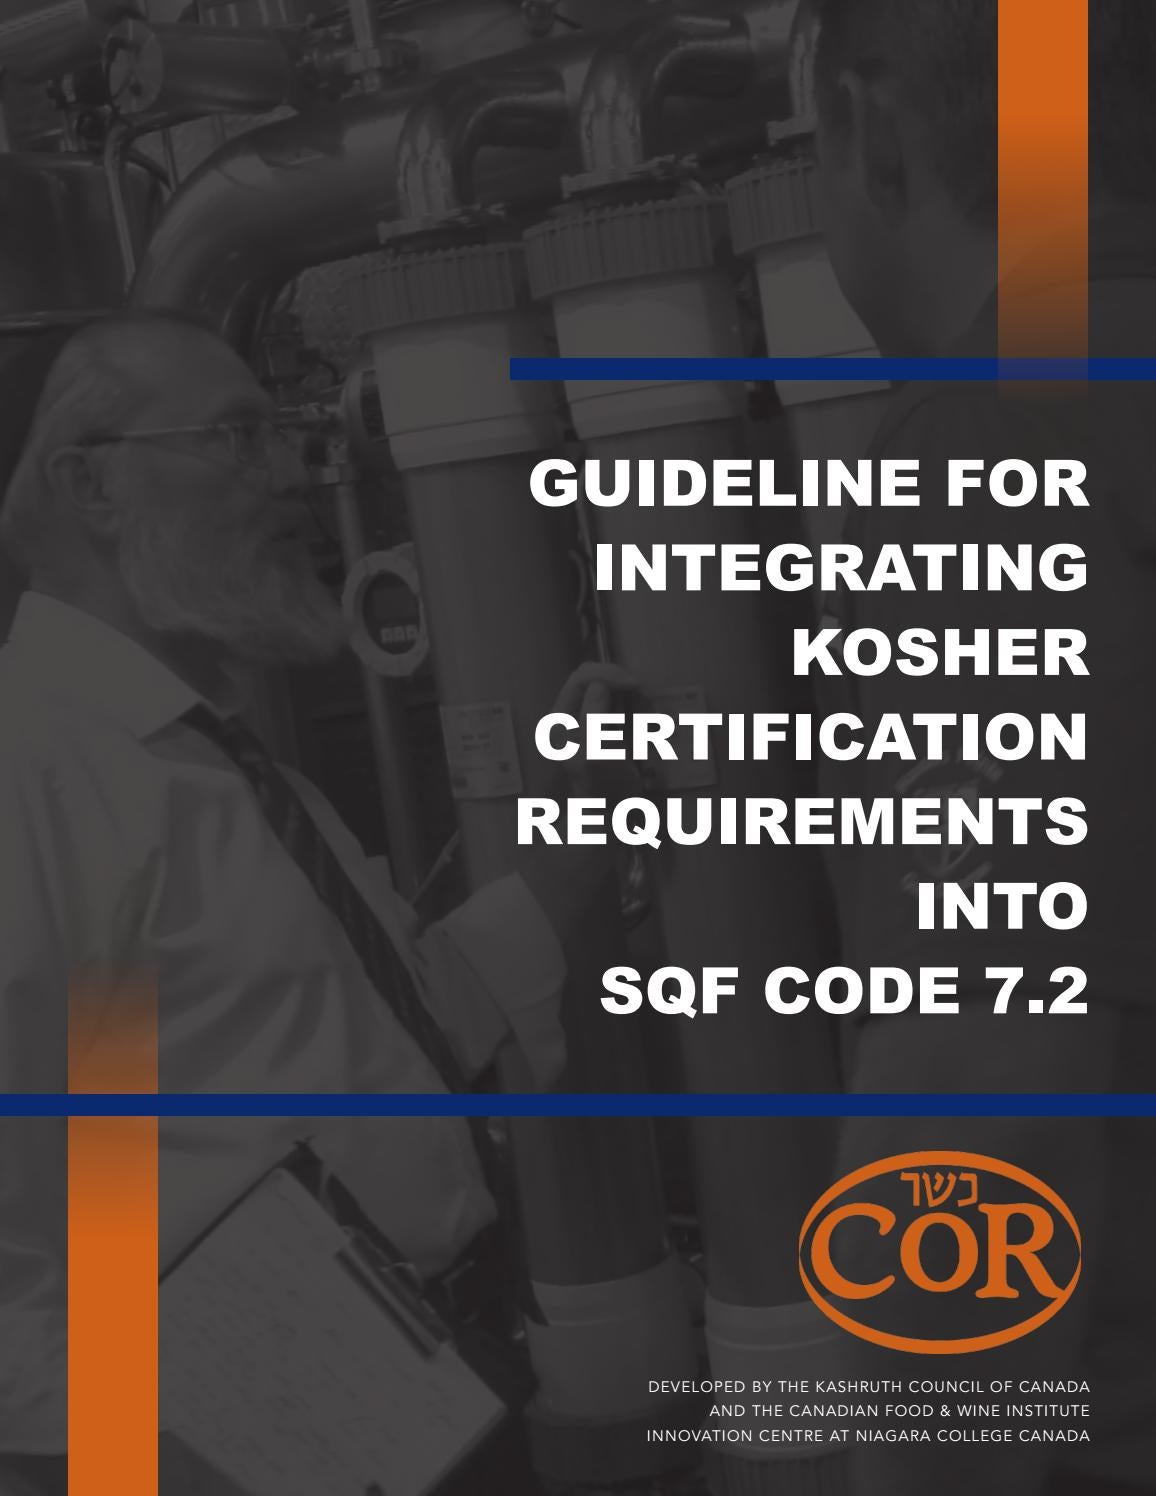 Guideline for integrating kosher certification requirements into guideline for integrating kosher certification requirements into sqf code 72 by cor kashruth council of canada issuu biocorpaavc